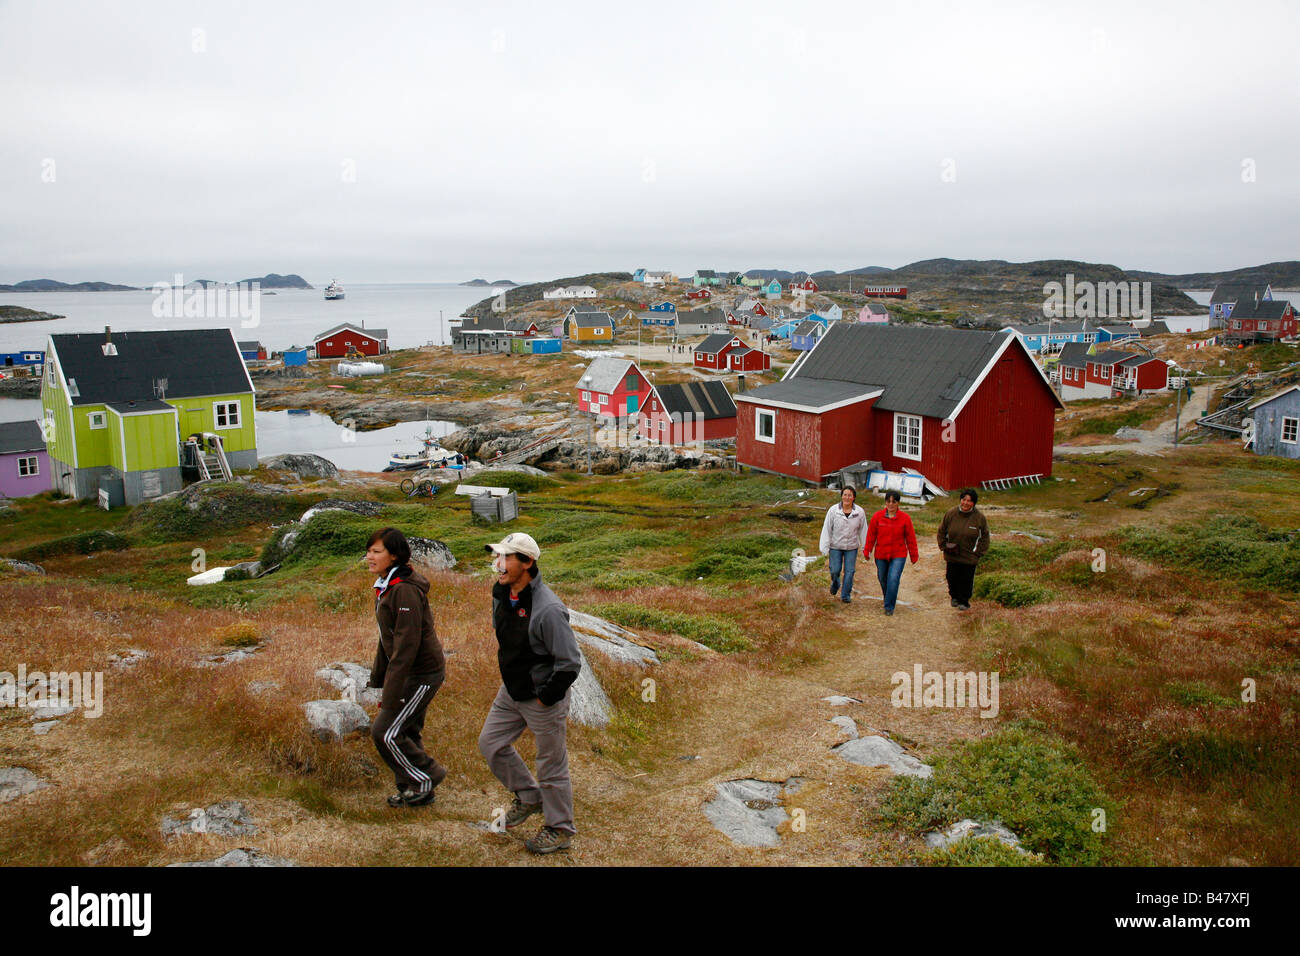 Greenland Stock Photos & Greenland Stock Images - Alamy